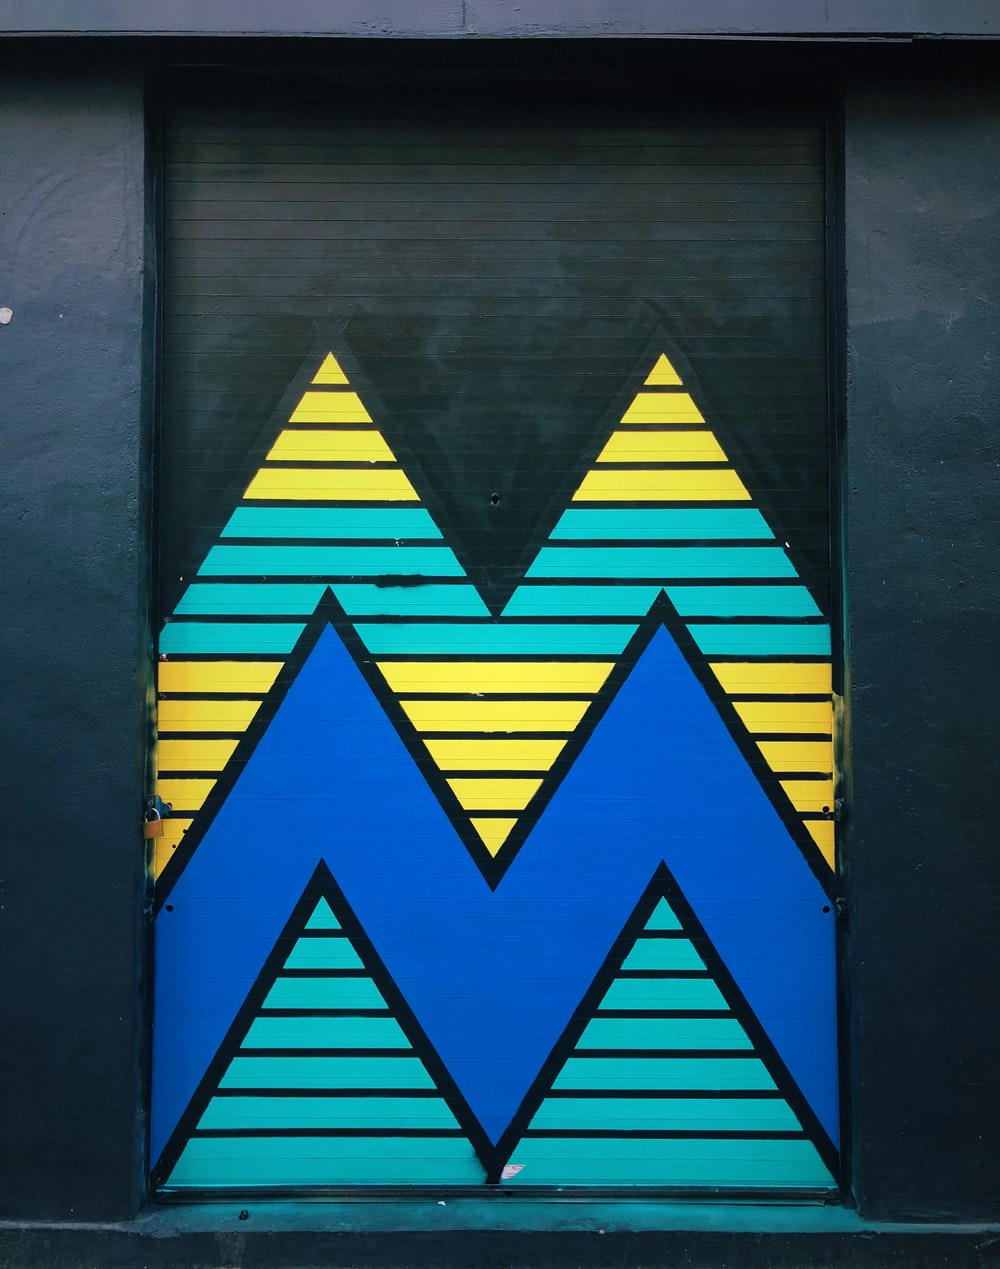 Letter m pictures hd download free images on unsplash minimalist photography of chevron striped wall art thecheapjerseys Image collections